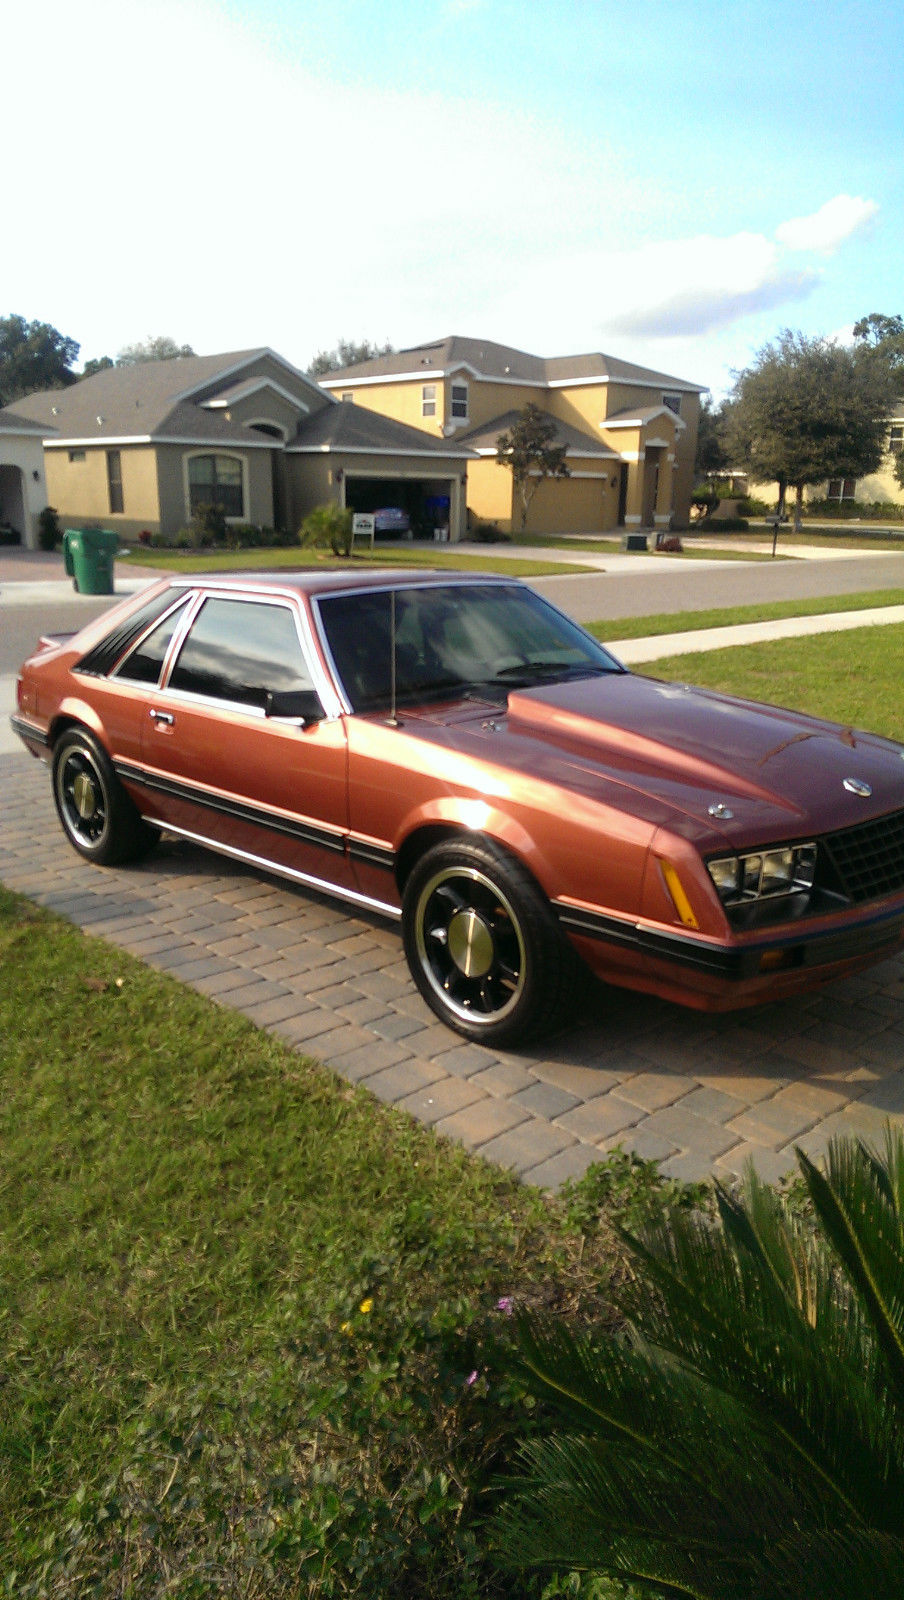 1979 MUSTANG 5.0 for sale in DeLand, Florida, United States